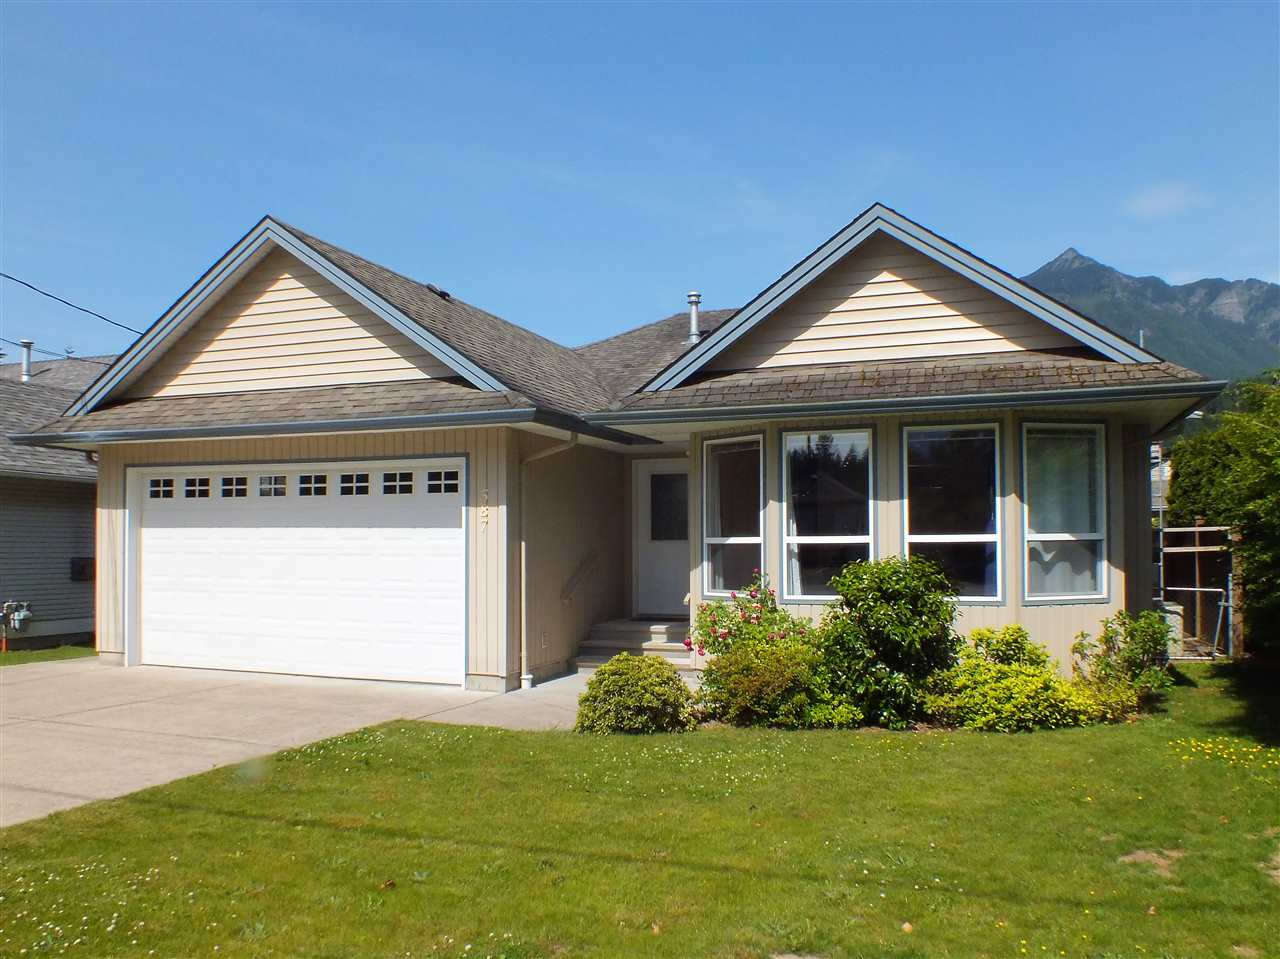 Large rancher with full basement, short walk to town center, golf & schools. Potential for 6 bedrooms, this immaculate home has 4 existing bedrooms, 3 full baths and oversized rec room and storage areas. Fenced & nicely landscaped yard enjoys lane access & great views of surrounding mountains. This home suits active retirees & large families alike and is ready to move into. Double garage and plenty of extra parking.